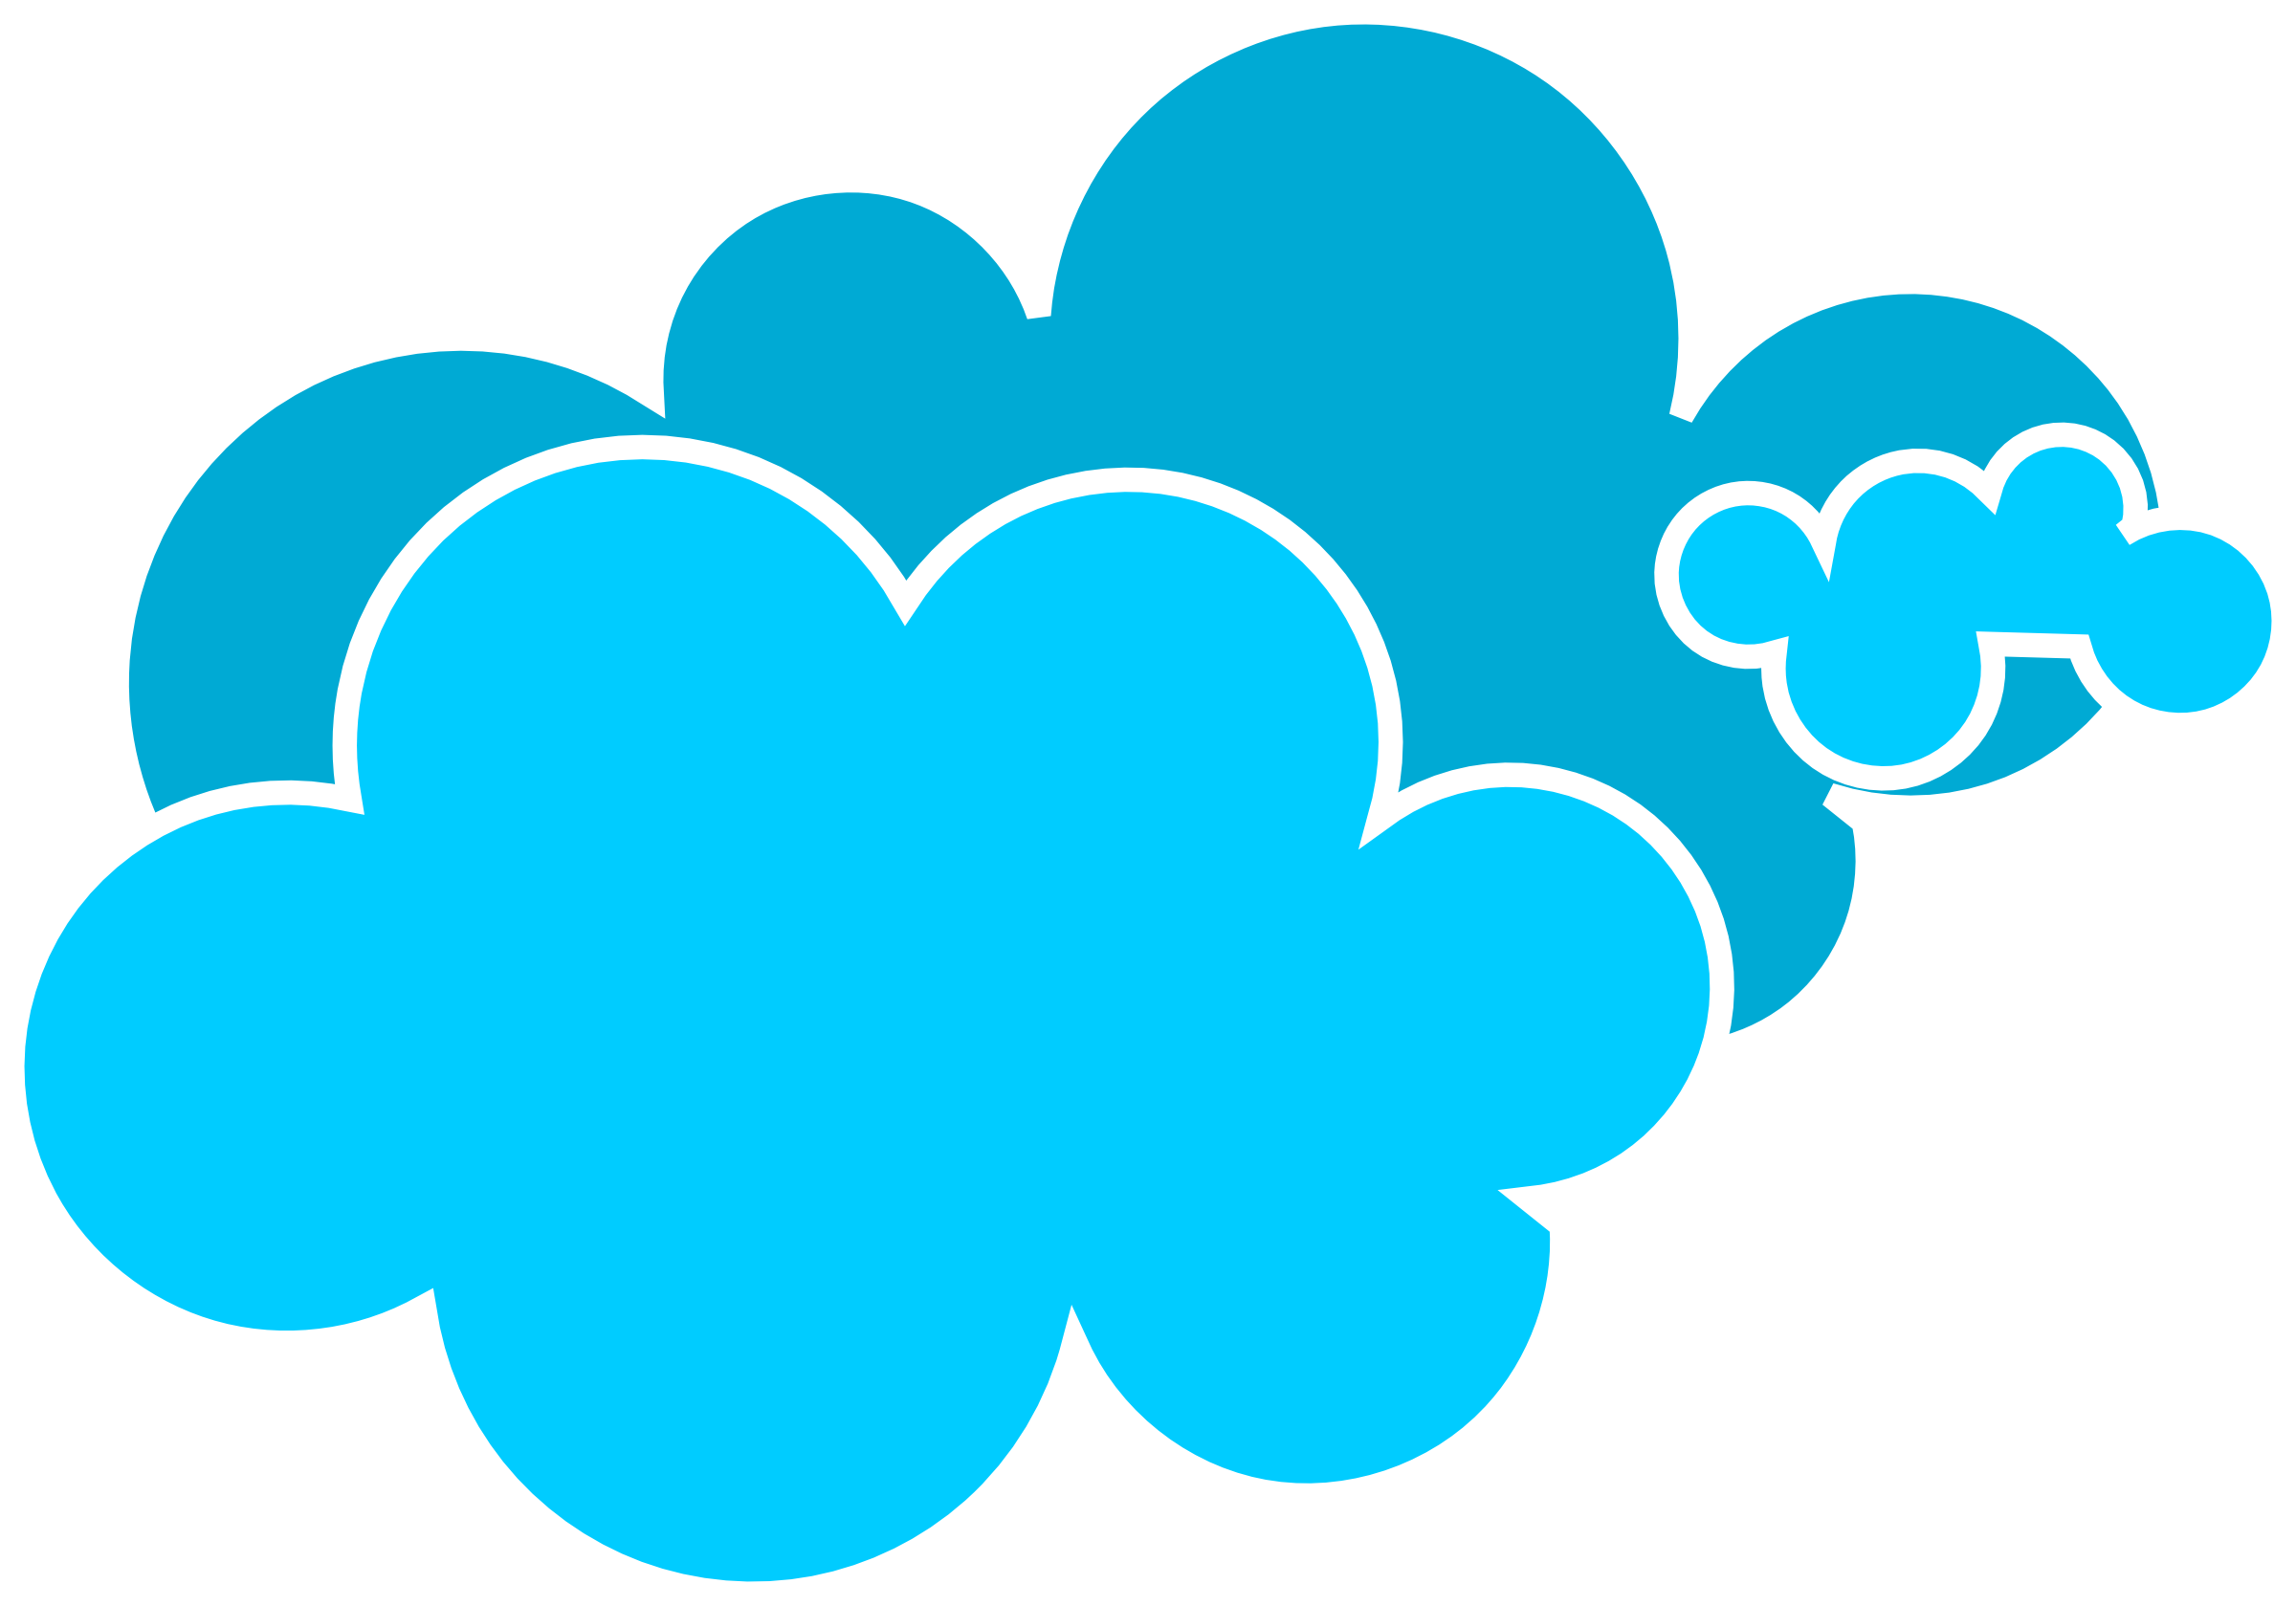 Clipart clouds png. Collection of cloud